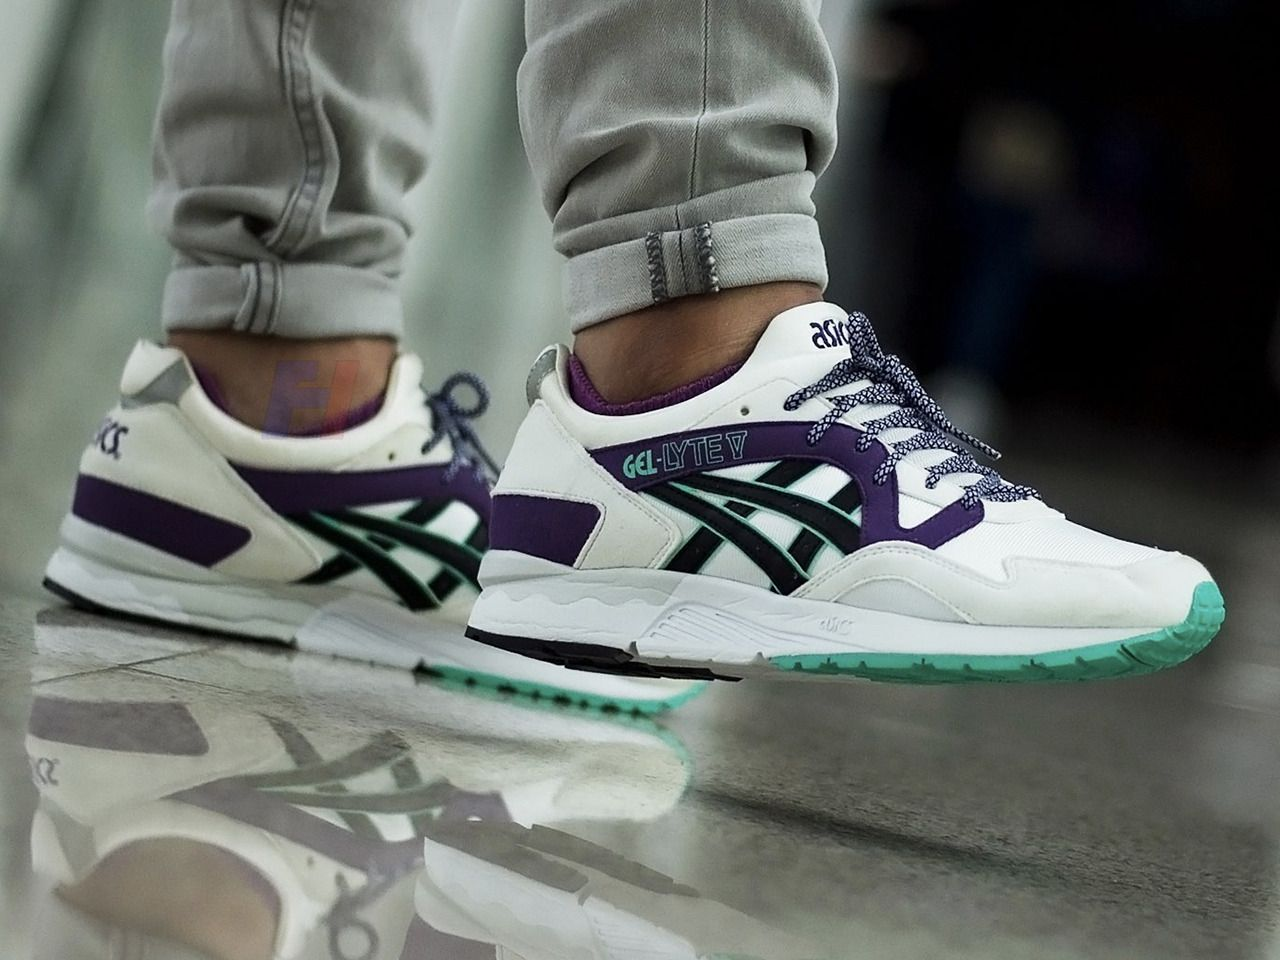 40b4b41e8437 Asics Gel Lyte V OG - White Purple - 2013 (by fran cis 29 )